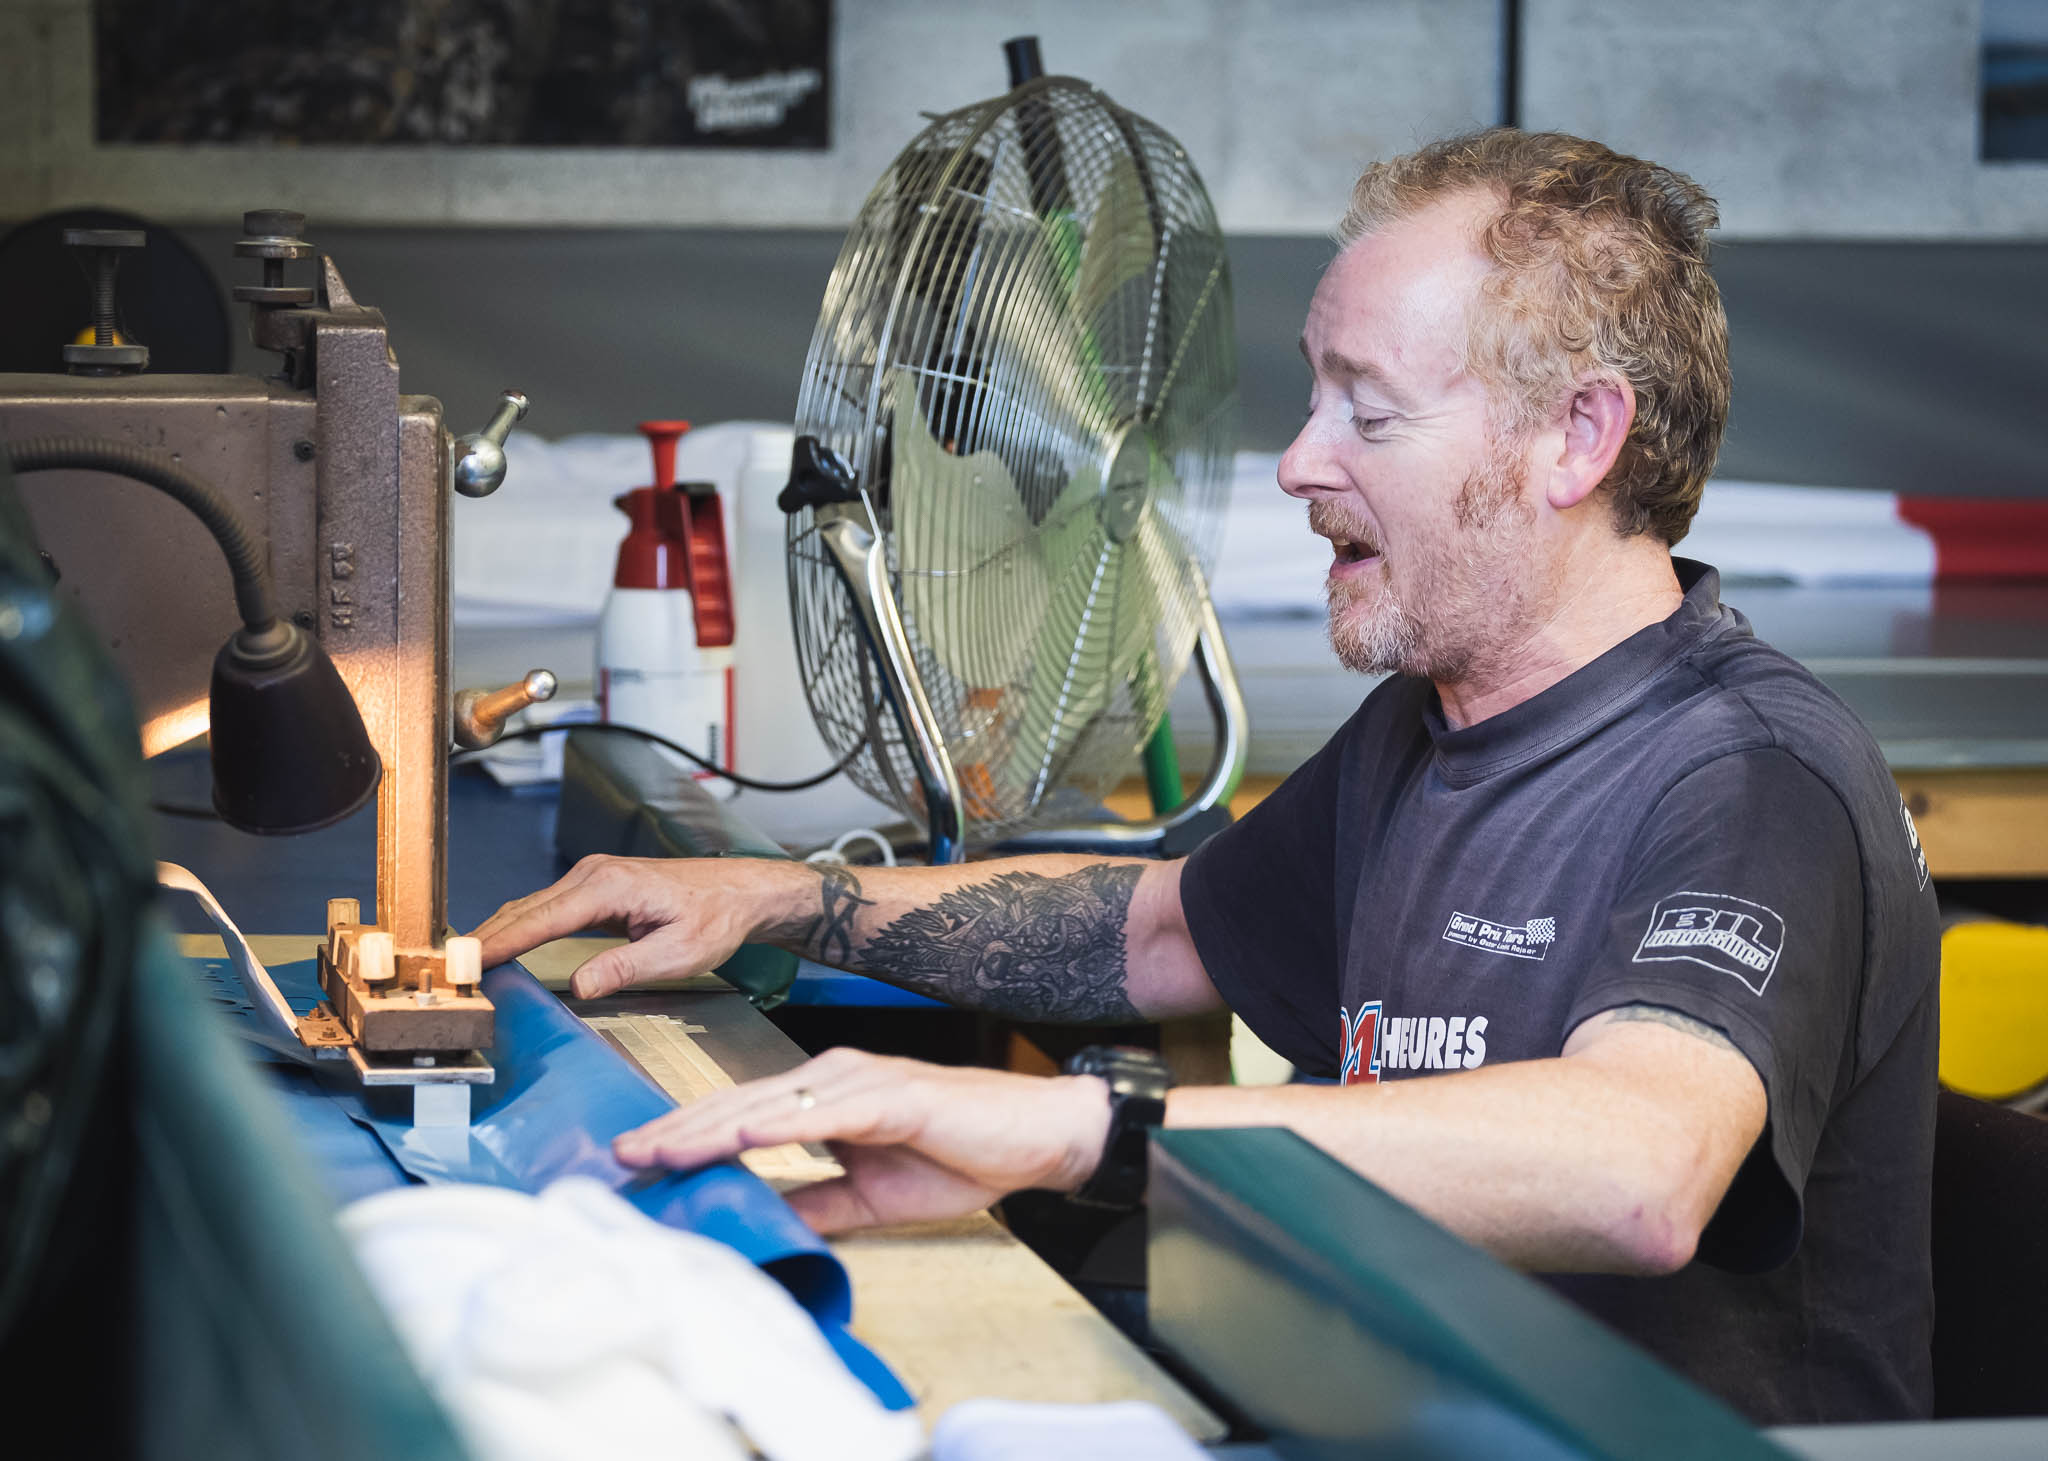 Colin Puckle from Fabricworks in Cheddar using a heat welder